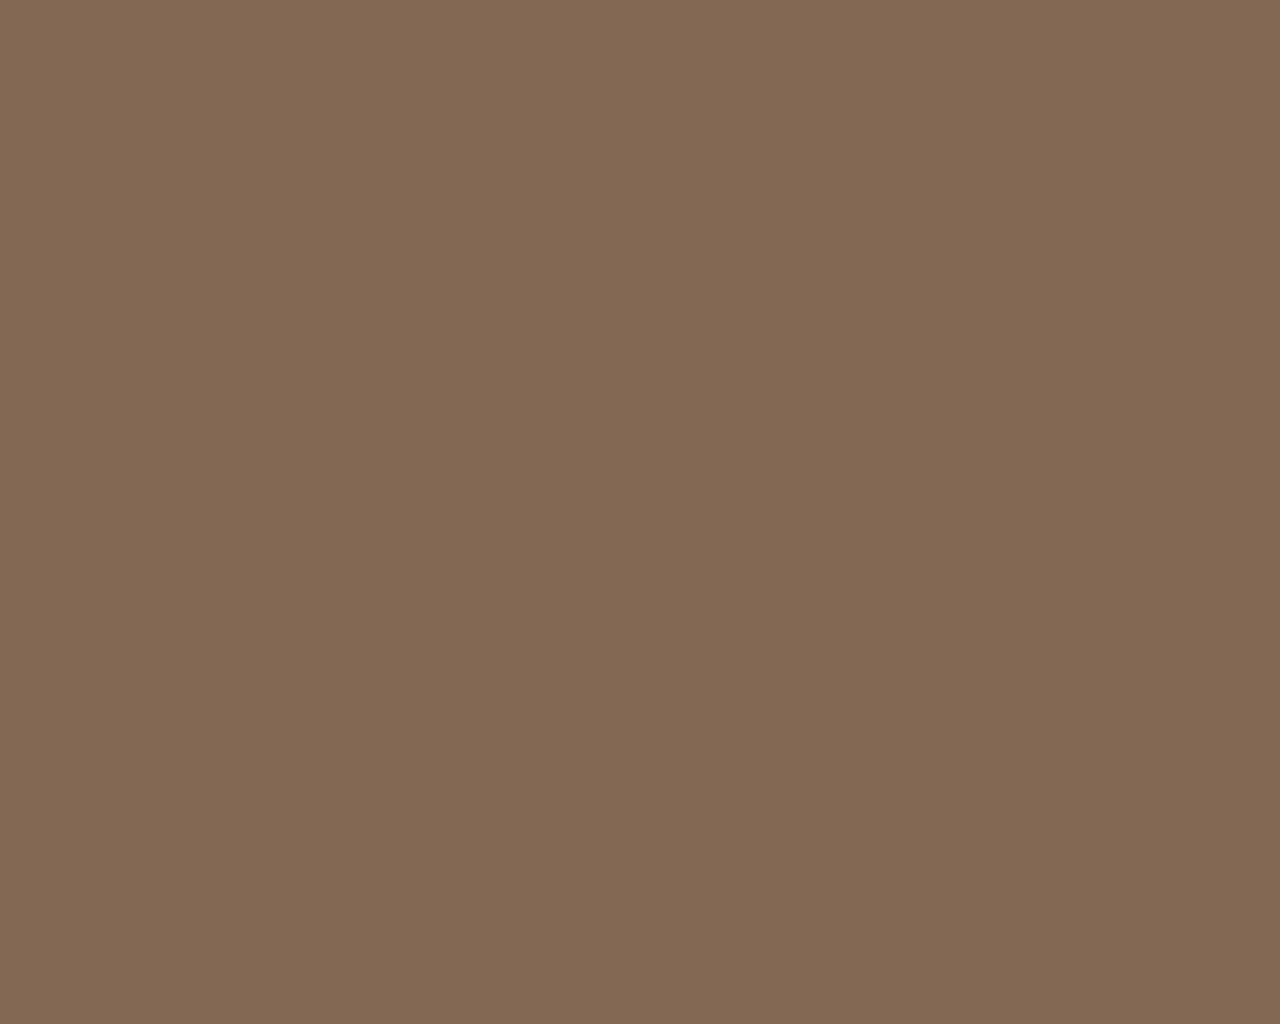 1280x1024 Pastel Brown Solid Color Background